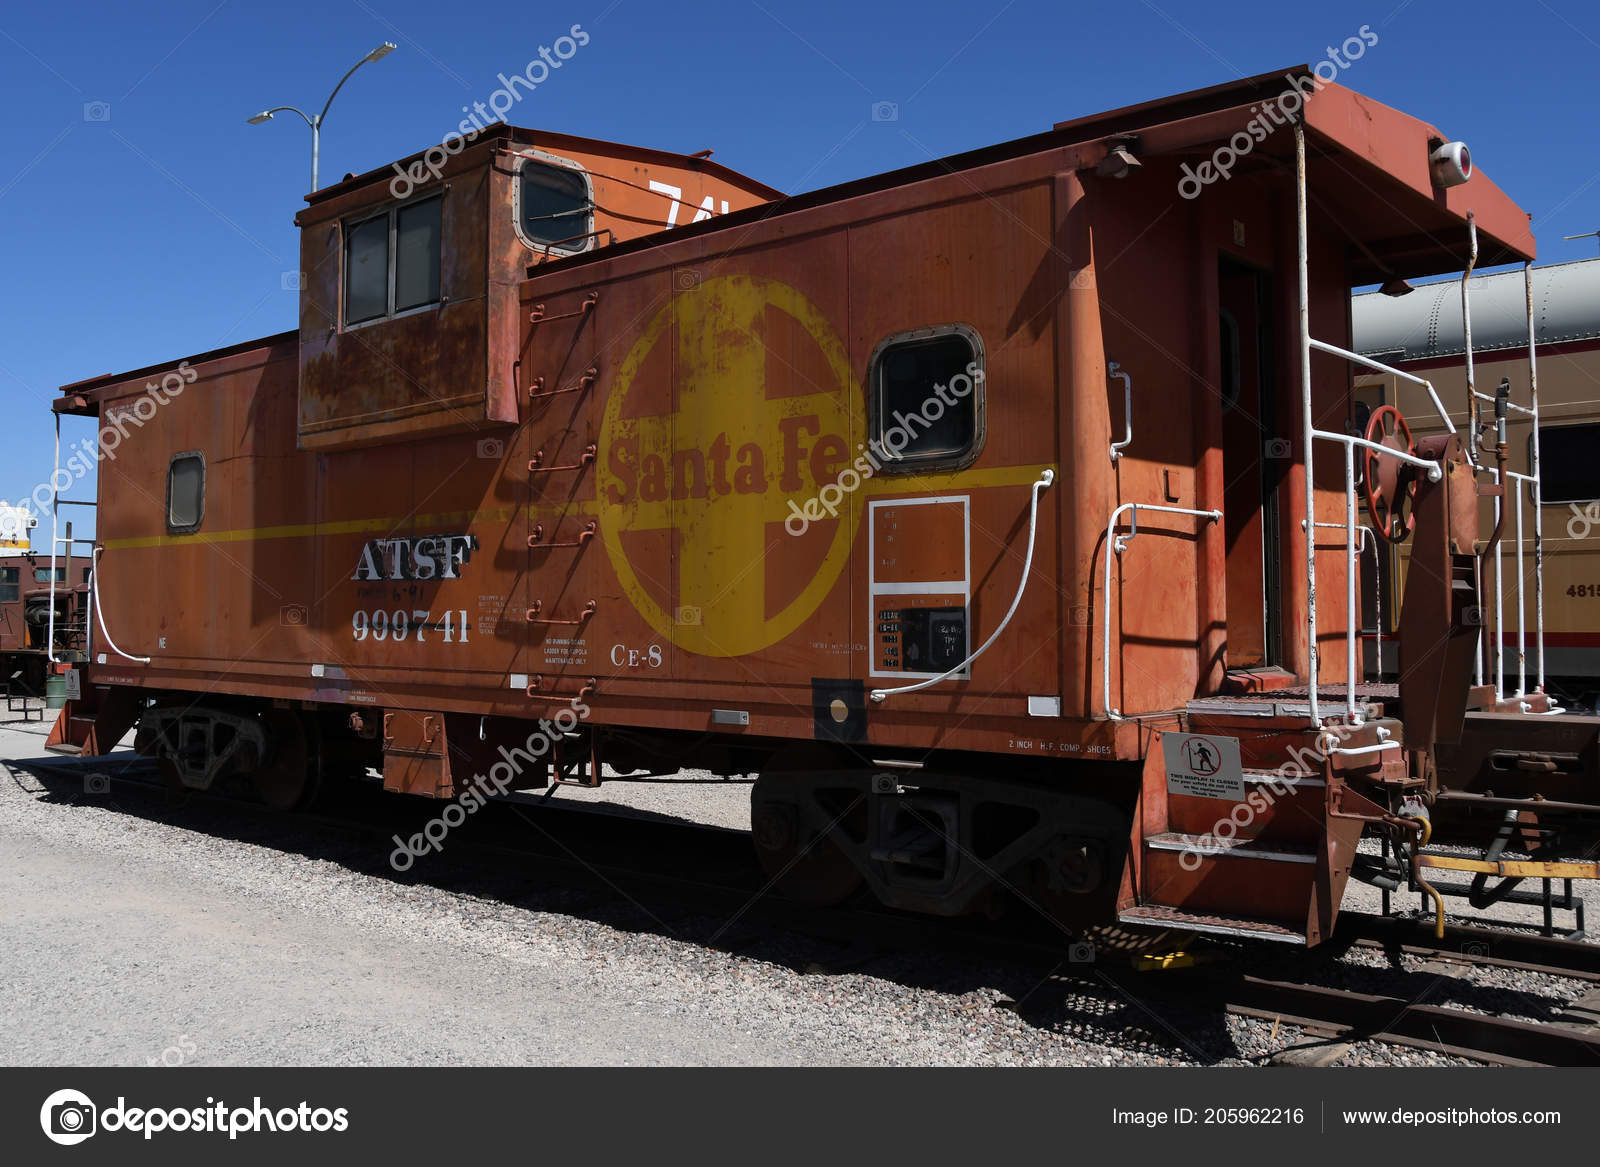 Freight Train Goods Train Group Freight Cars Goods Wagons